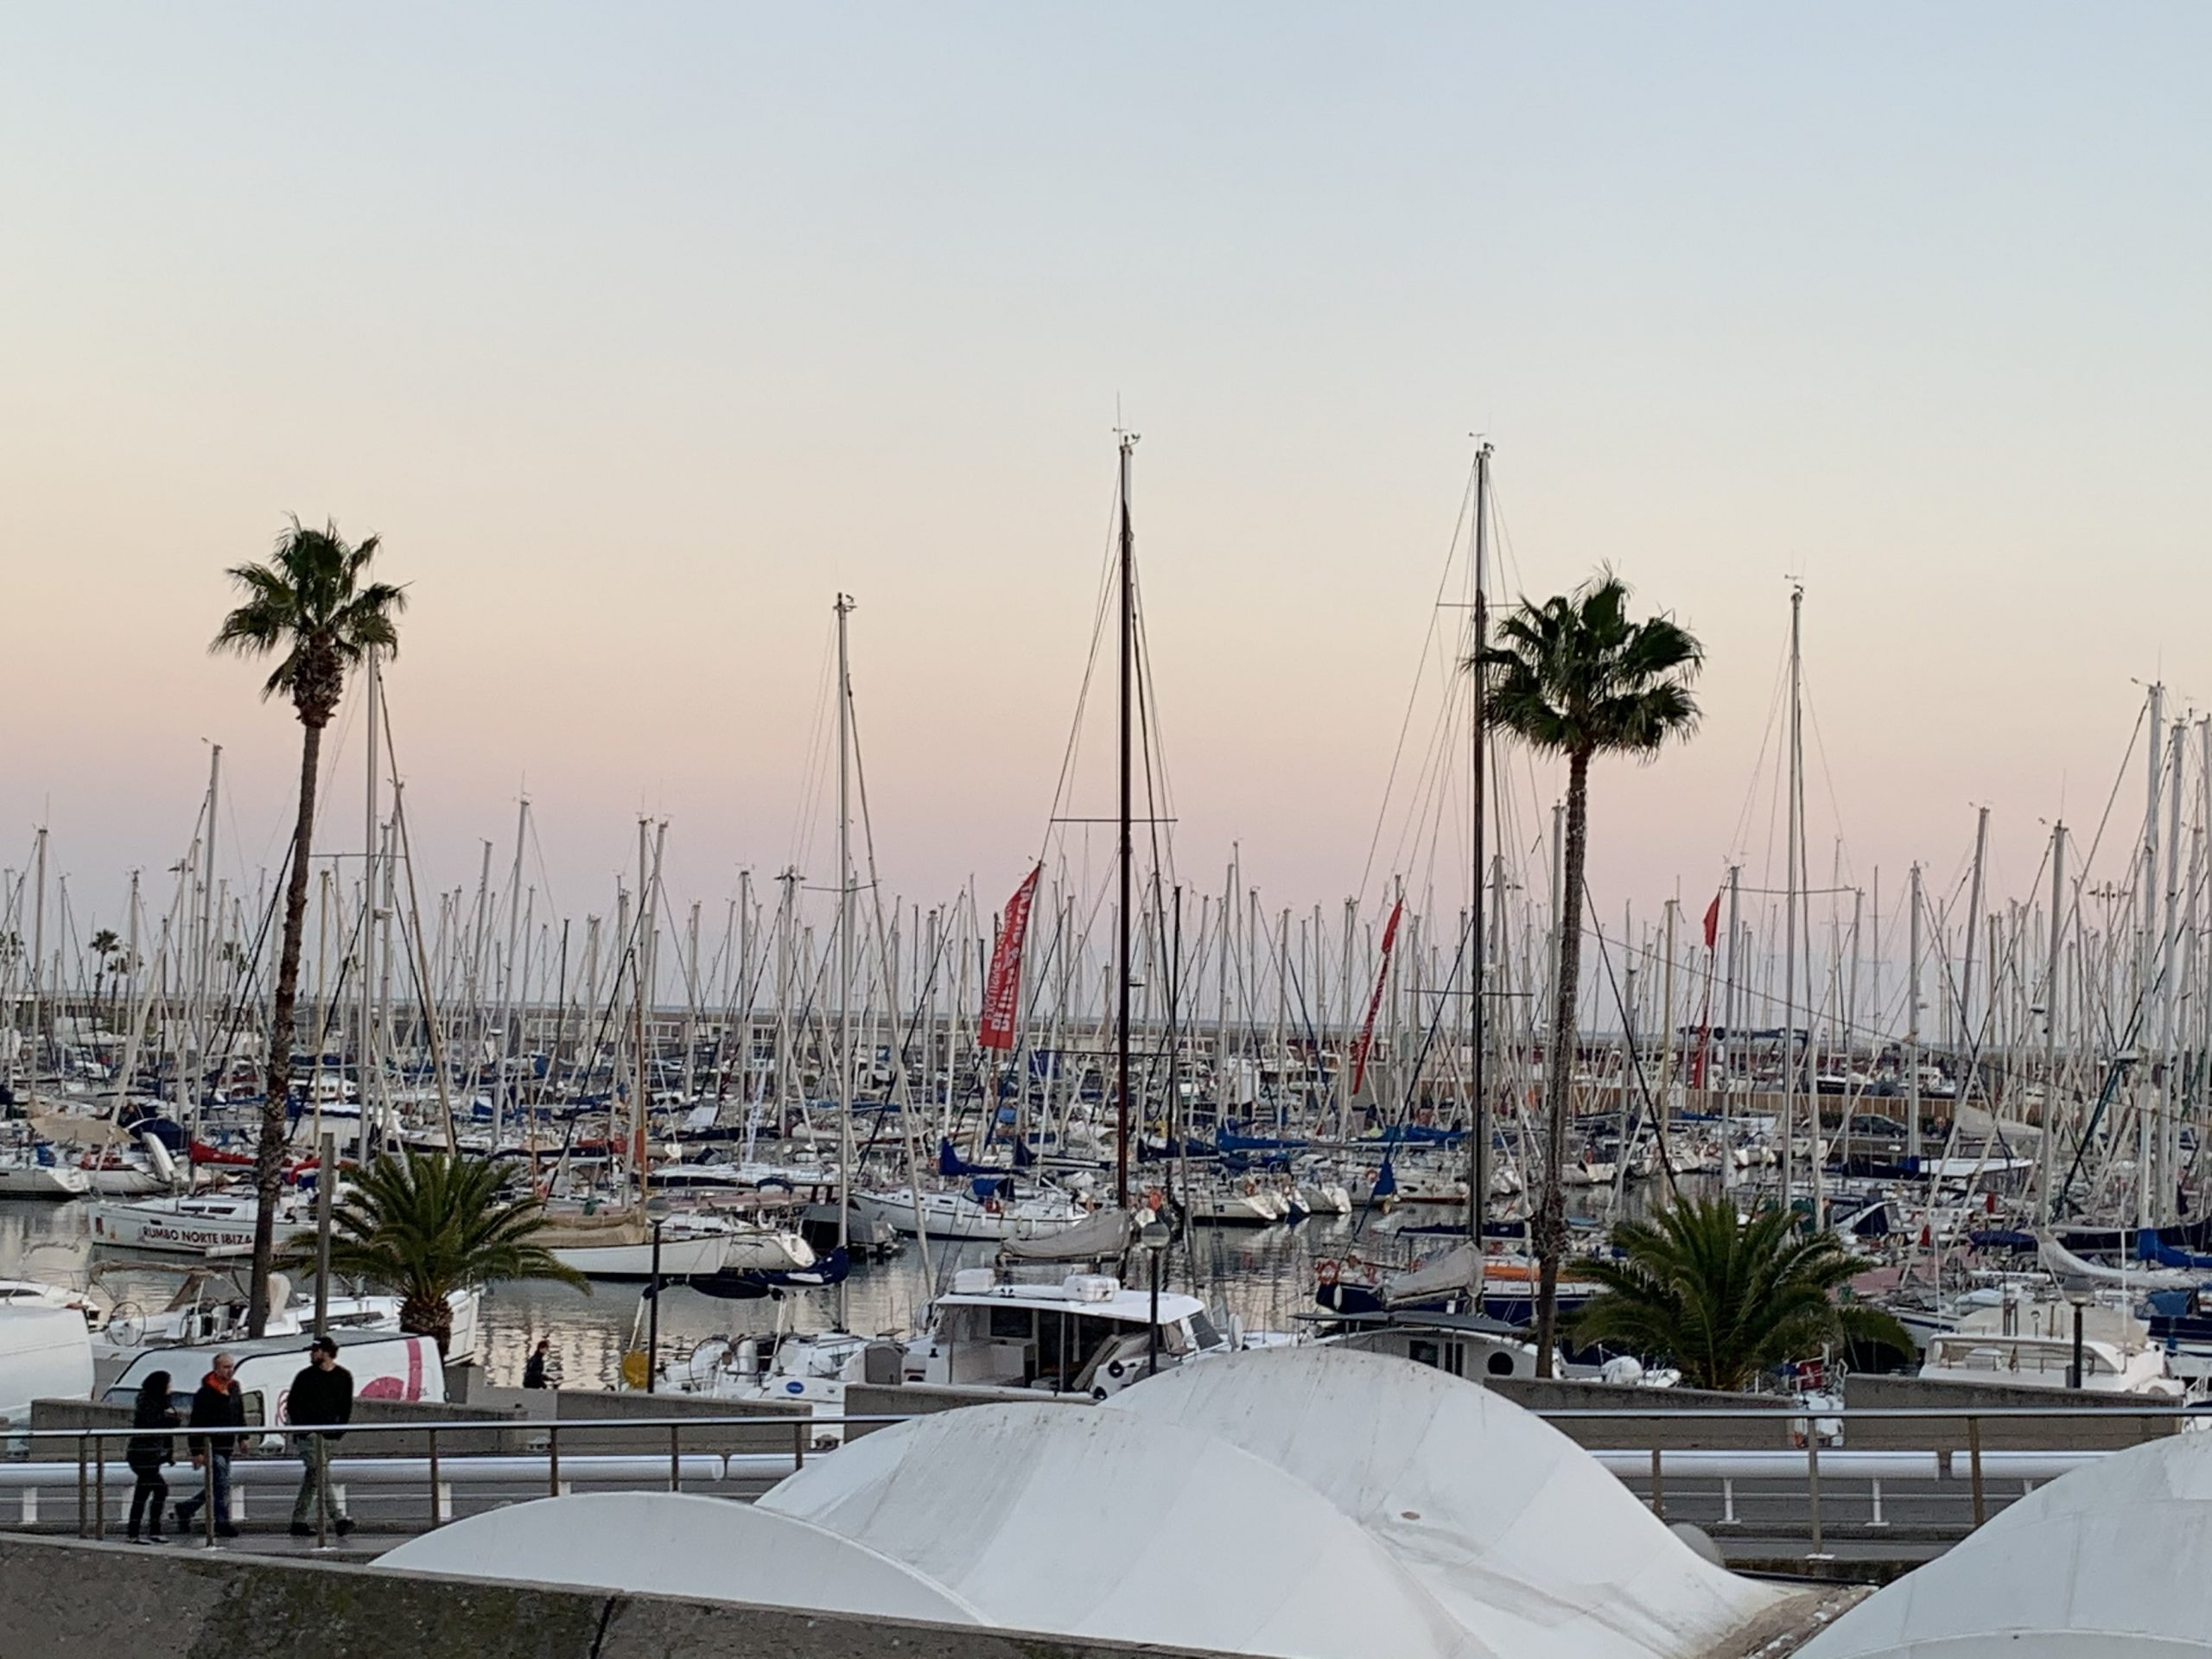 Many sailboat masts parked in harbor. Palm trees line sidewalk in front of harbor